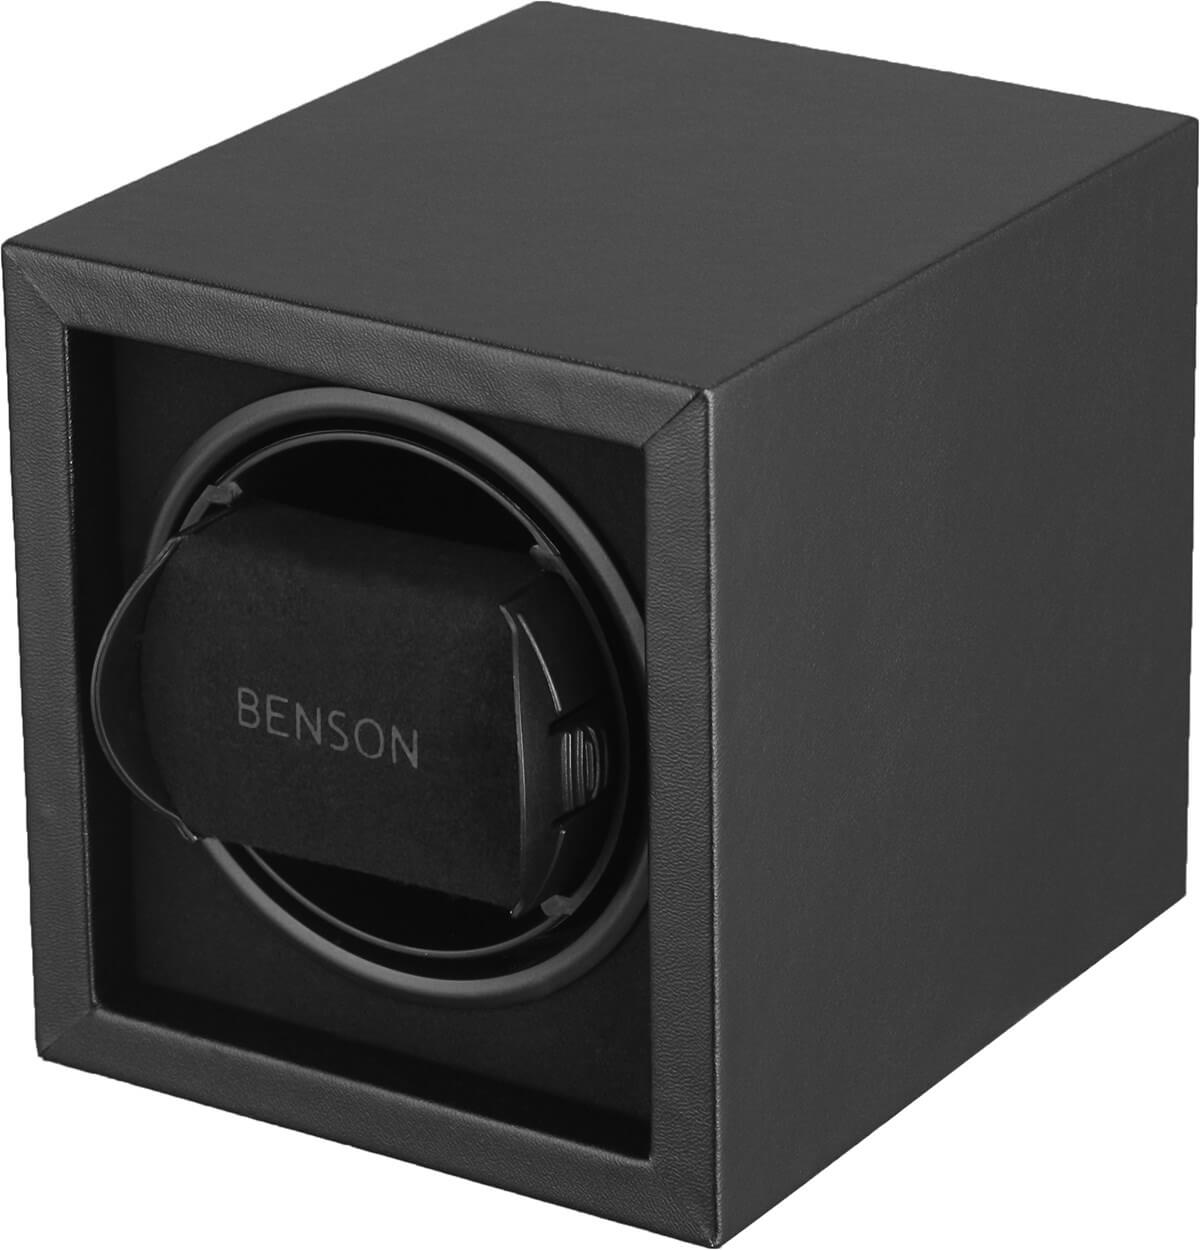 Benson Compact 1.17. Black Leather